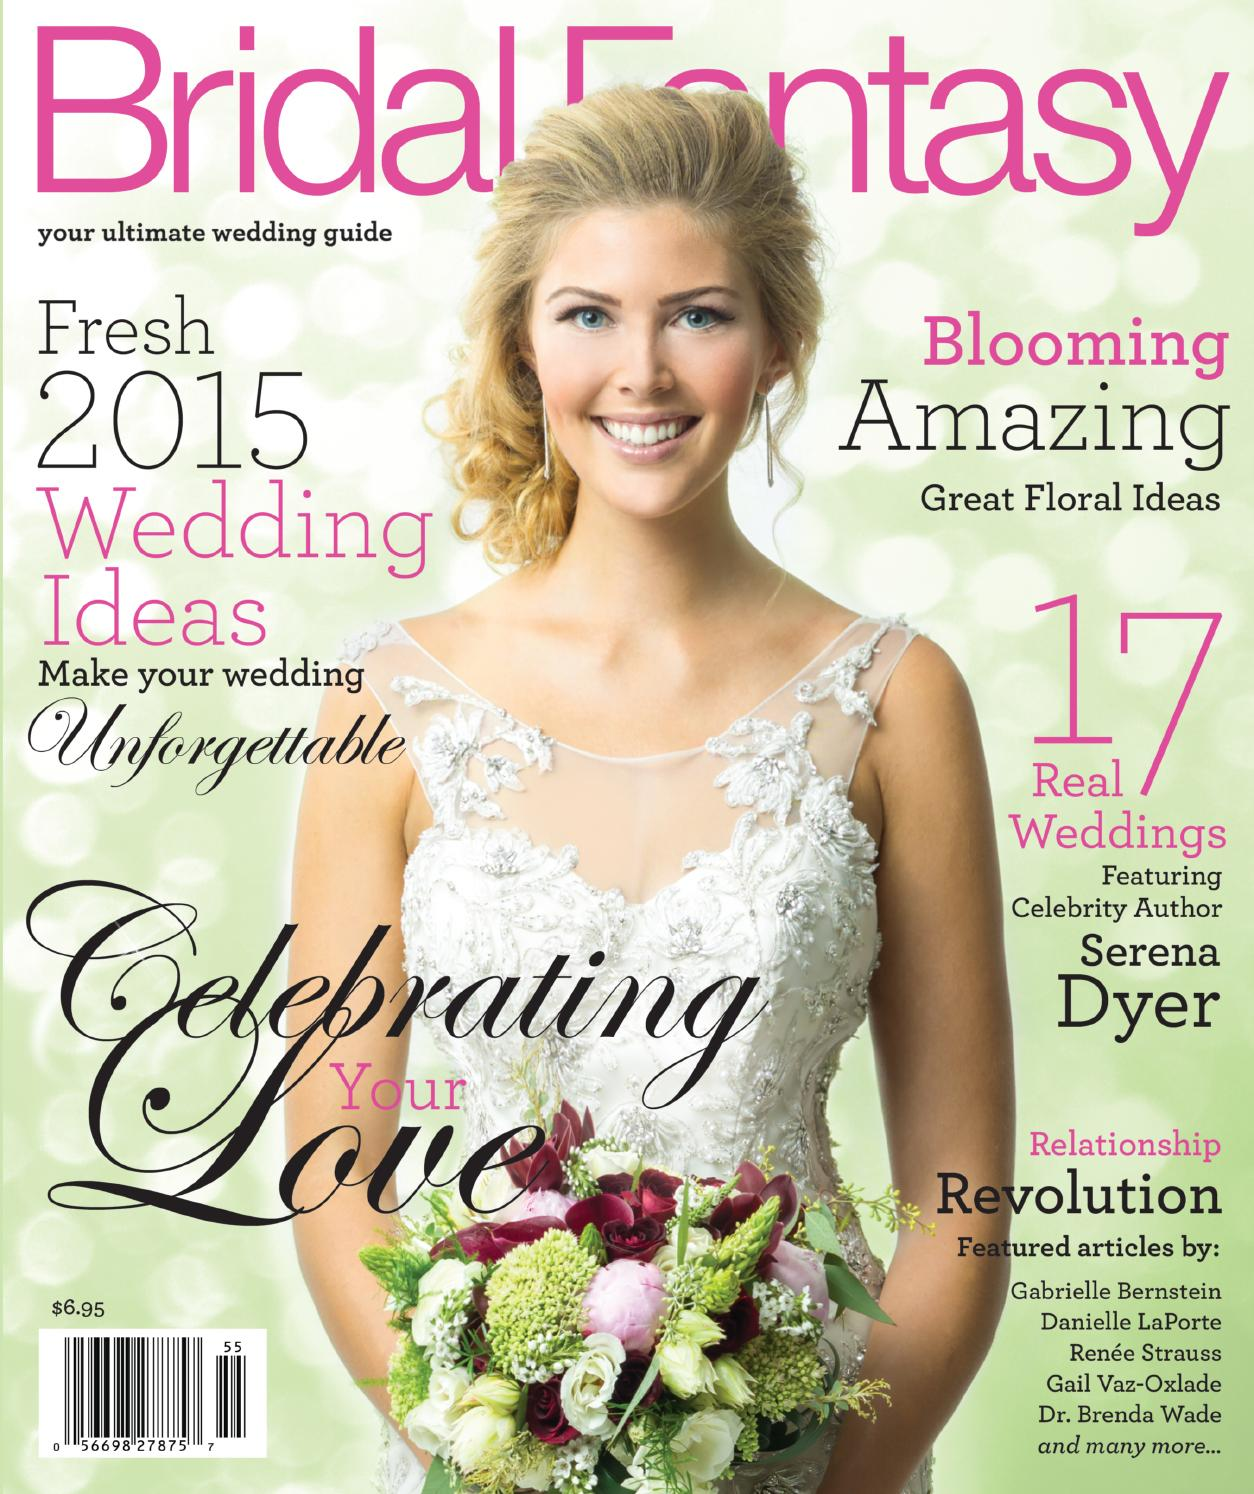 Bridal Fantasy Magazine 2015 By Bridal Fantasy Group